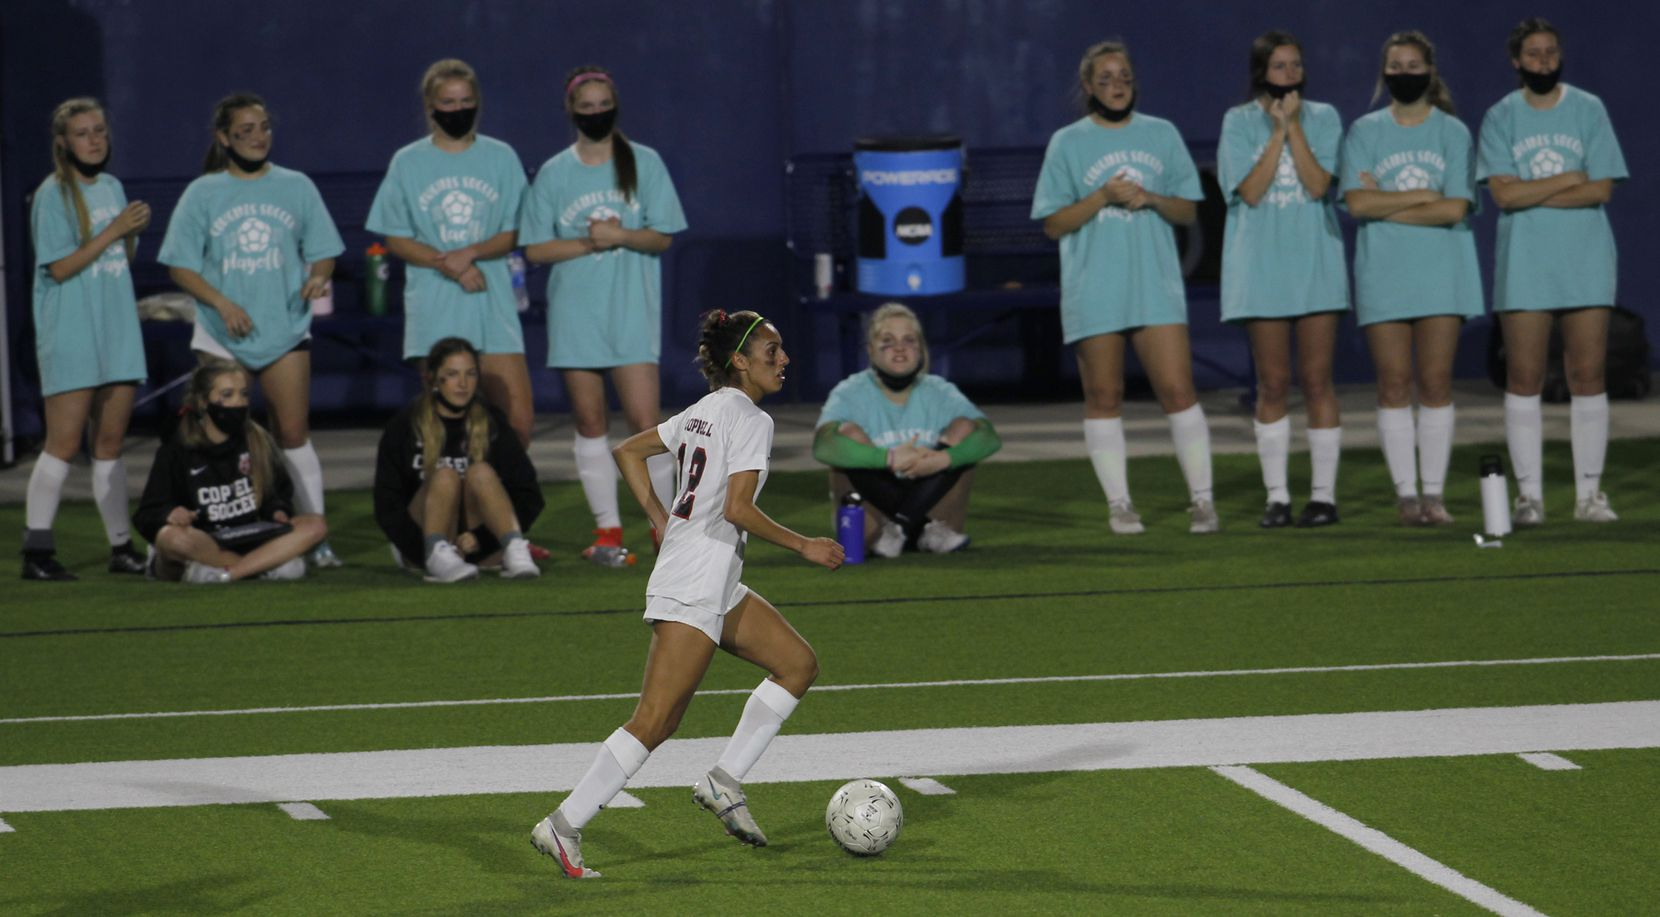 Coppell's Jocelyn Alonzo (12) visually peruses the Prosper defensive set as she moves the ball past the Cowgirls bench area during first half action. The two teams played their Class 6A bi-district girls soccer playoff game at McKinney ISD Stadium in McKinney on March 26, 2021. (Steve Hamm/ Special Contributor)